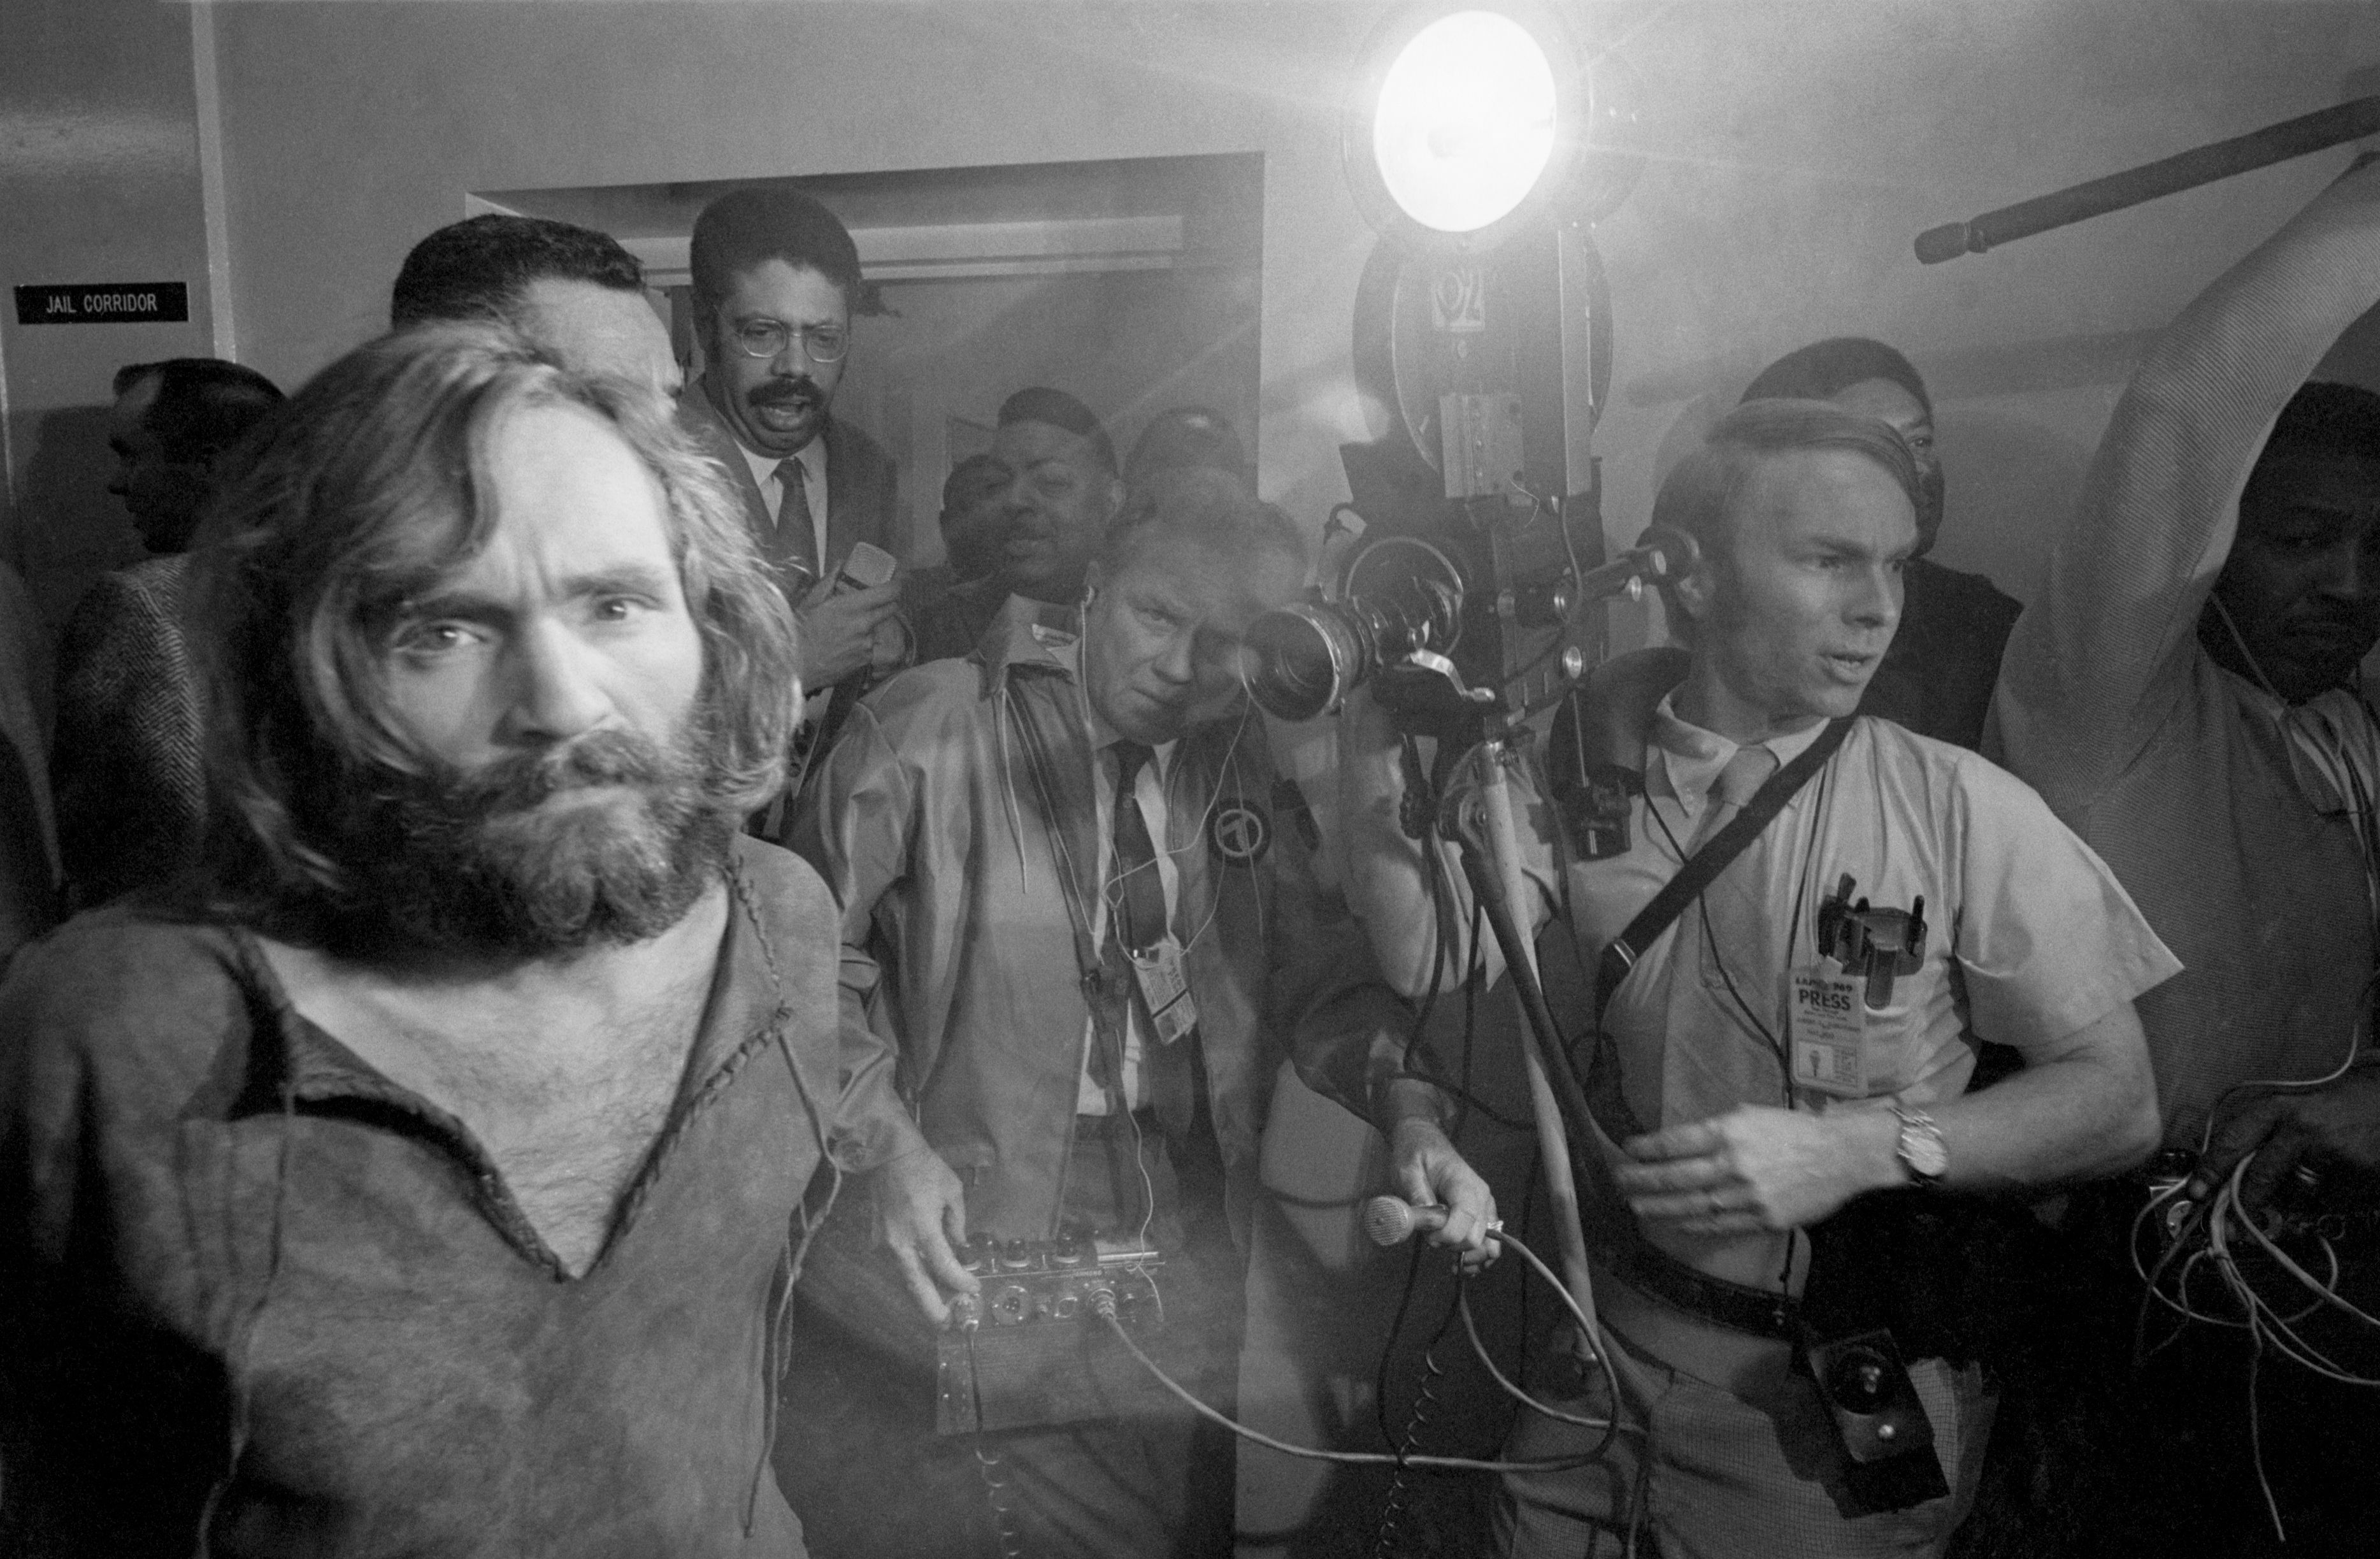 Charles Manson Wife – How Many Women Did He Marry, Where Are They Now?